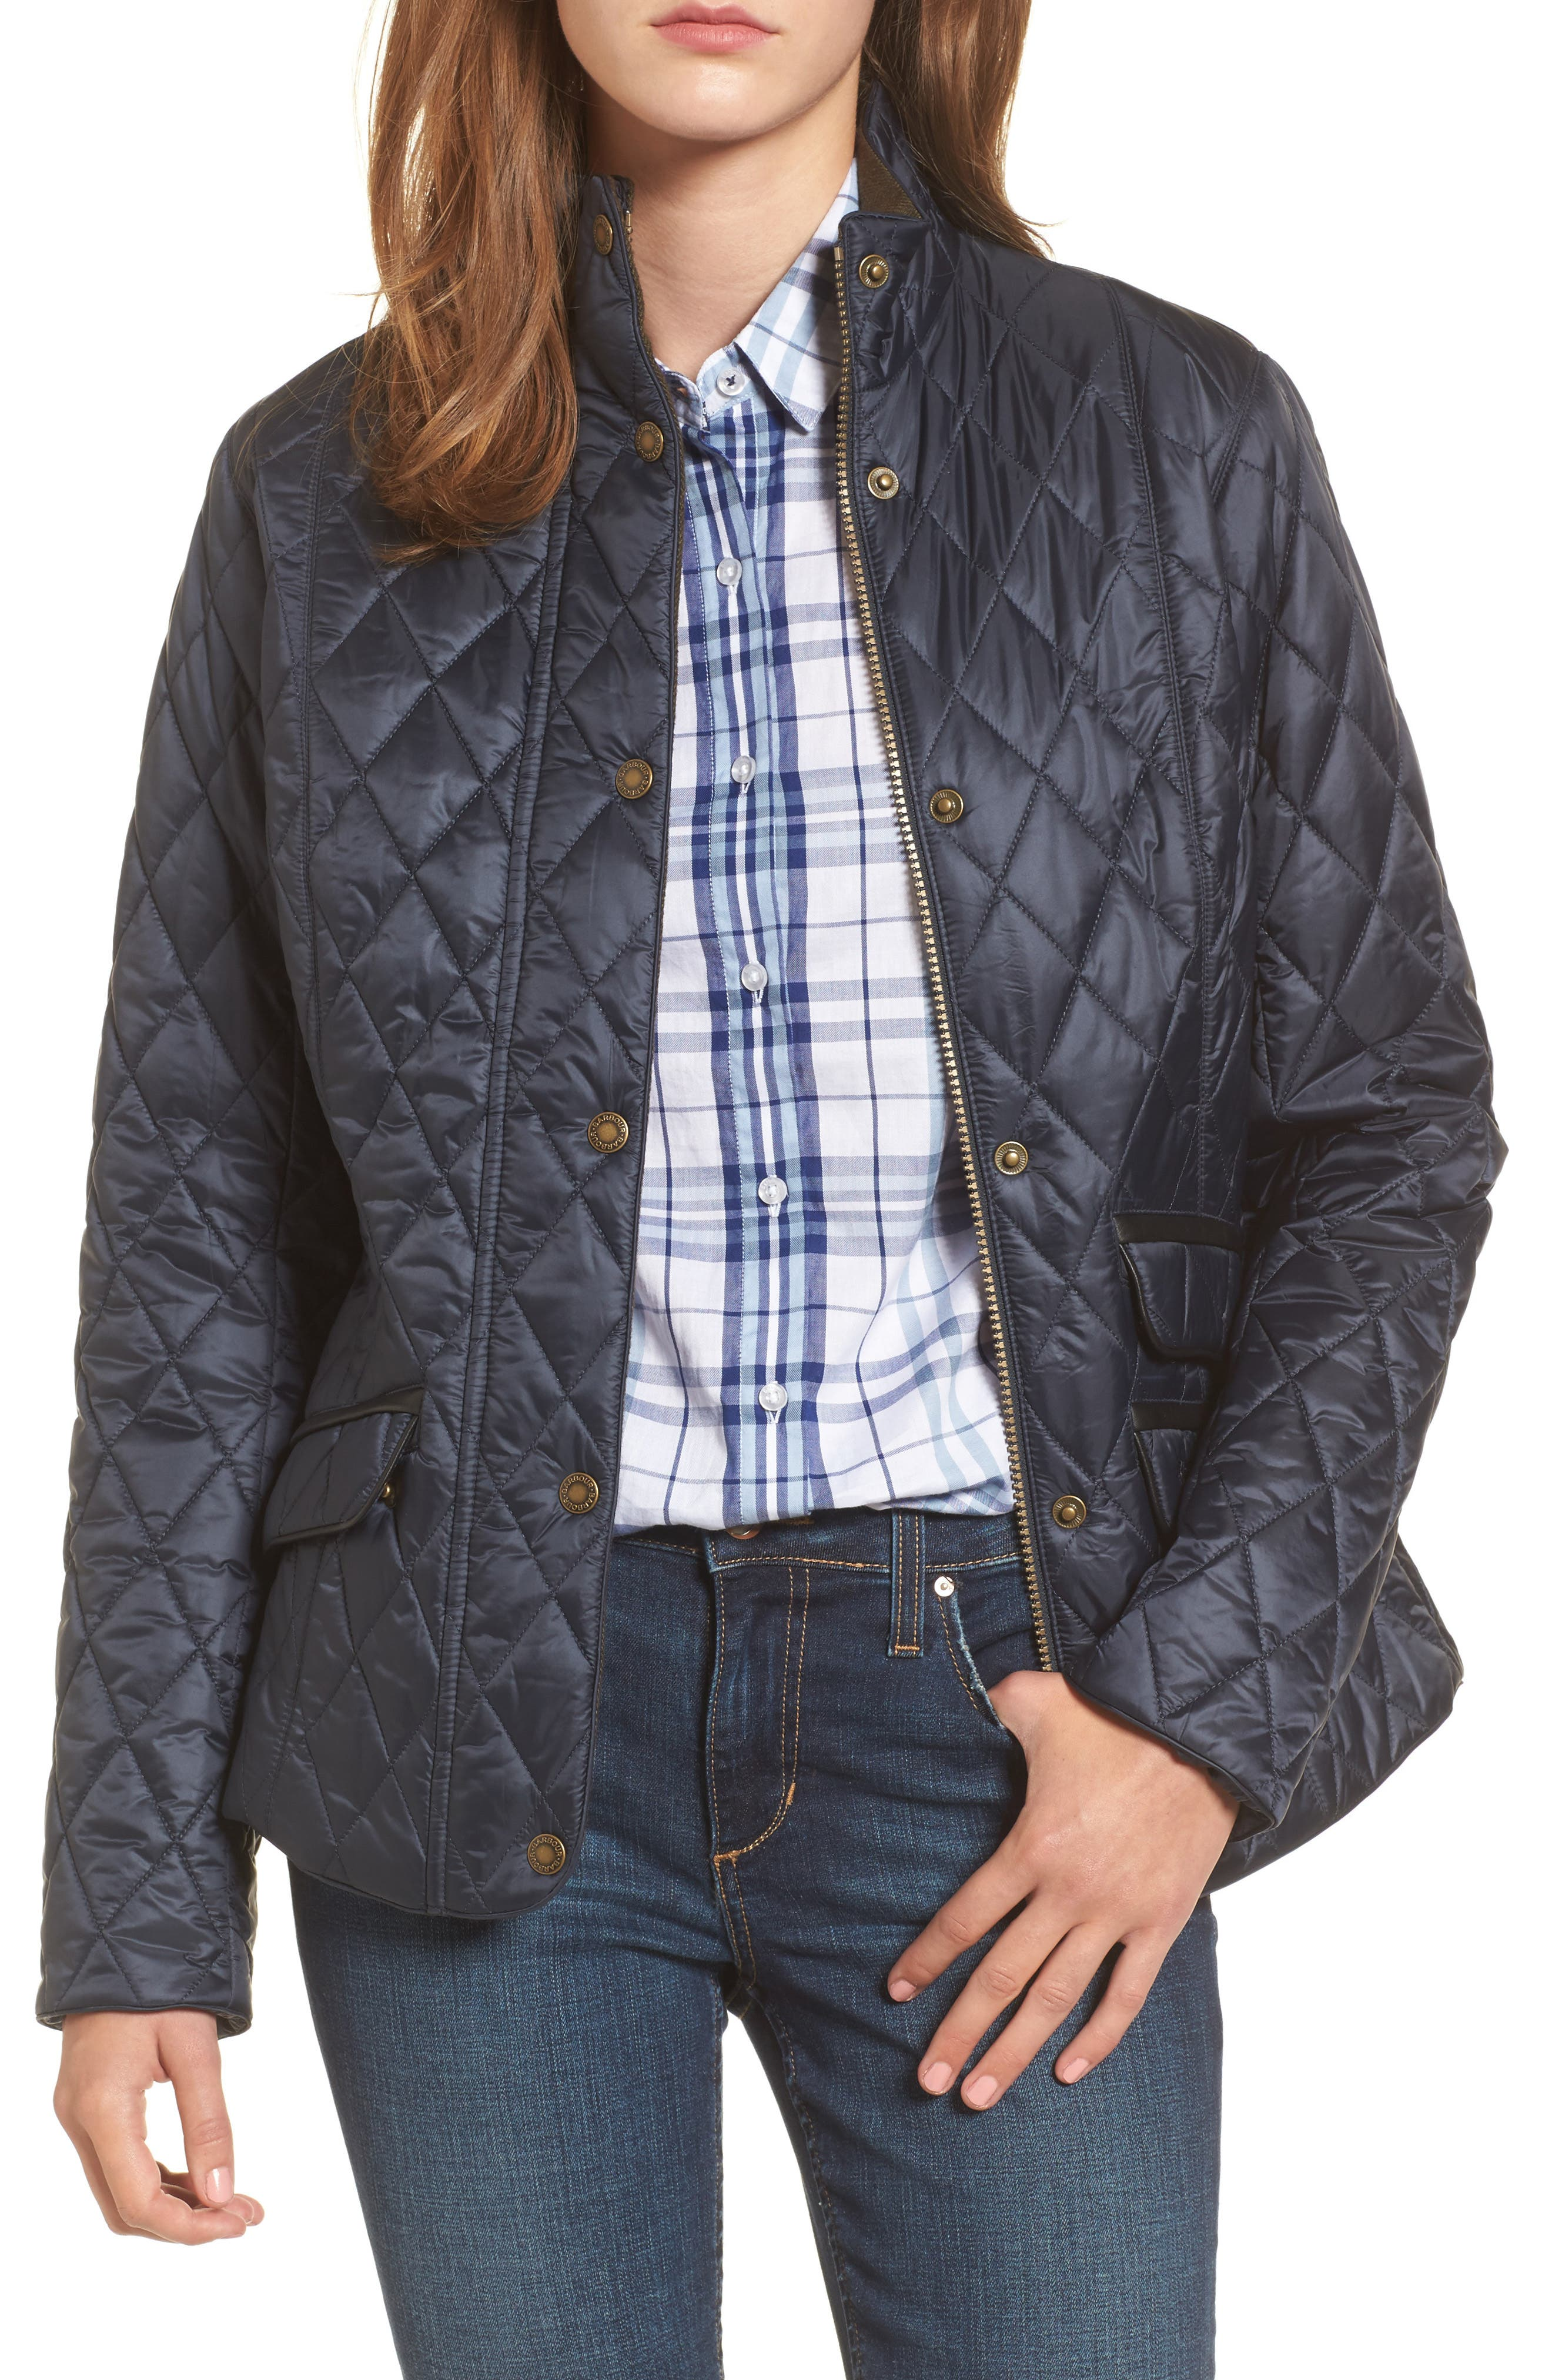 Augustus Water Resistant Quilted Jacket,                             Main thumbnail 1, color,                             Navy